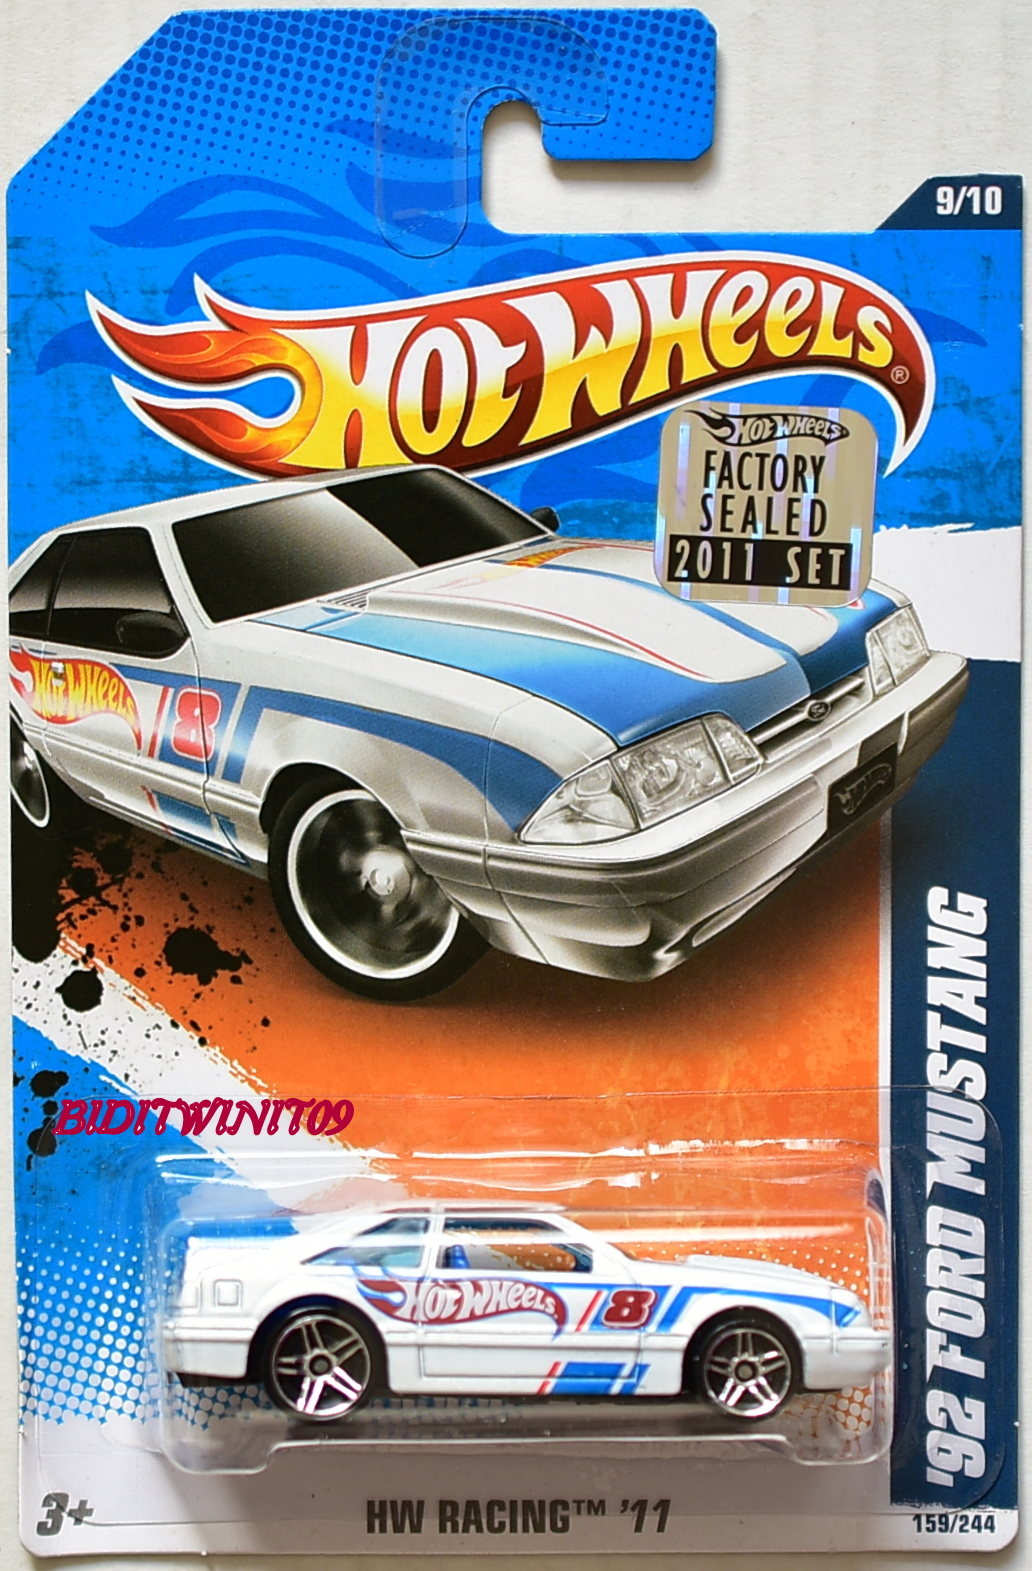 HOT WHEELS 2011 HW RACING '92 FORD MUSTANG #9/10 WHITE FACTORY SEALED